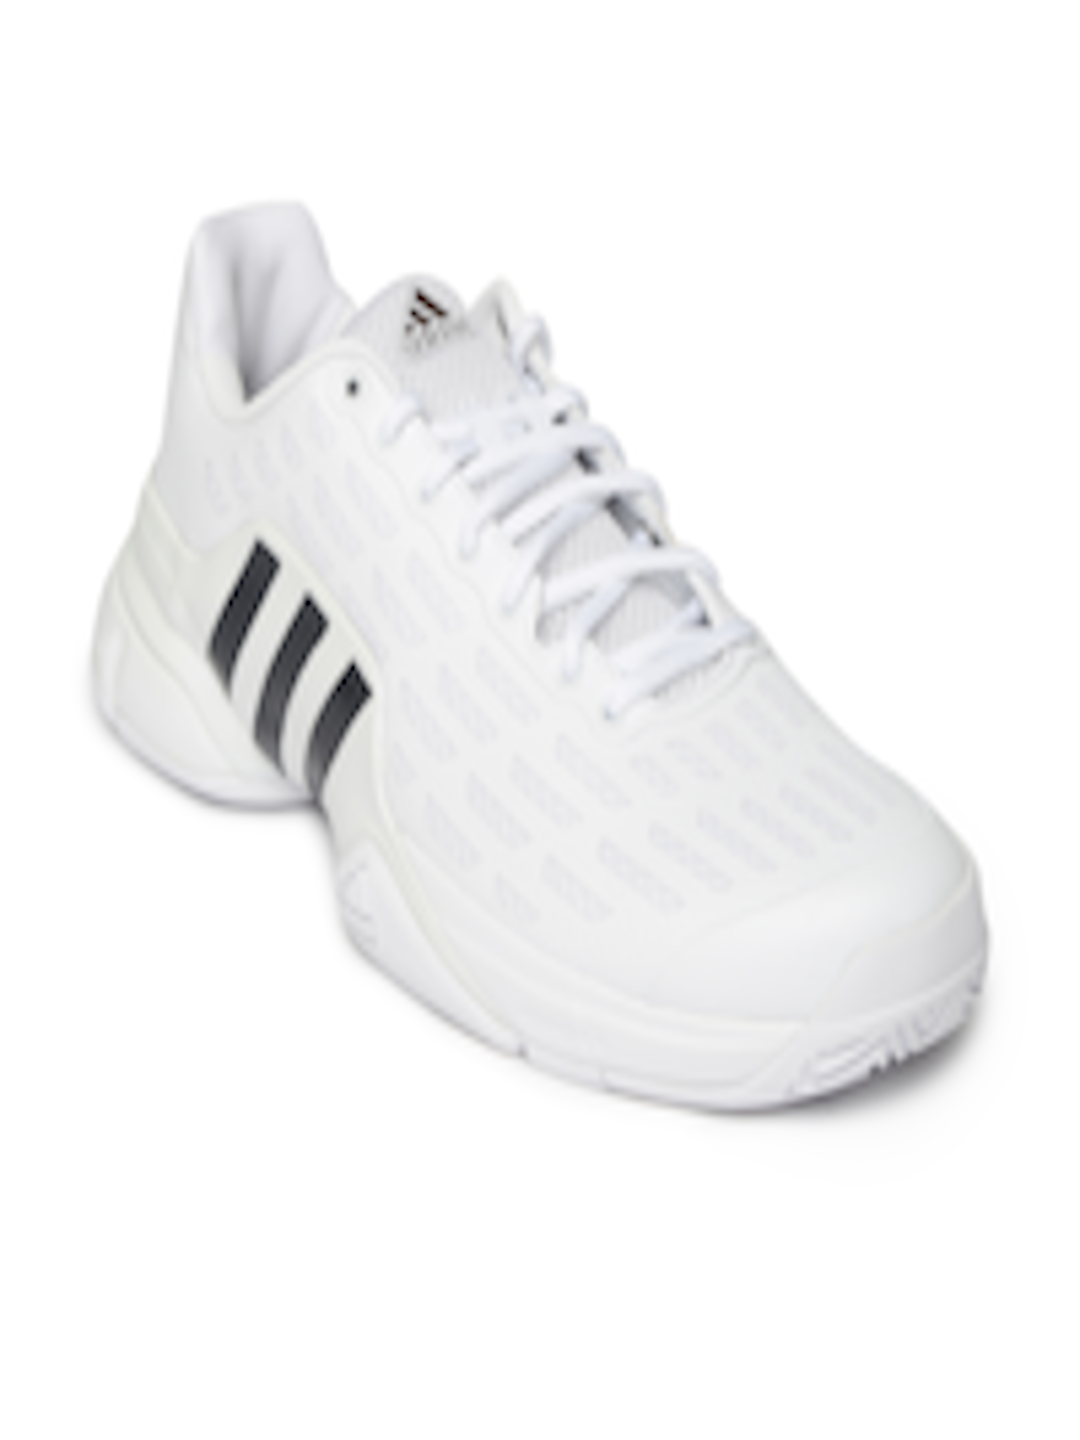 15f3d4bd12f 11469779054237-Adidas -Men-White-Barricade-2016-Tennis-Shoes-2461469779054072-1.jpg